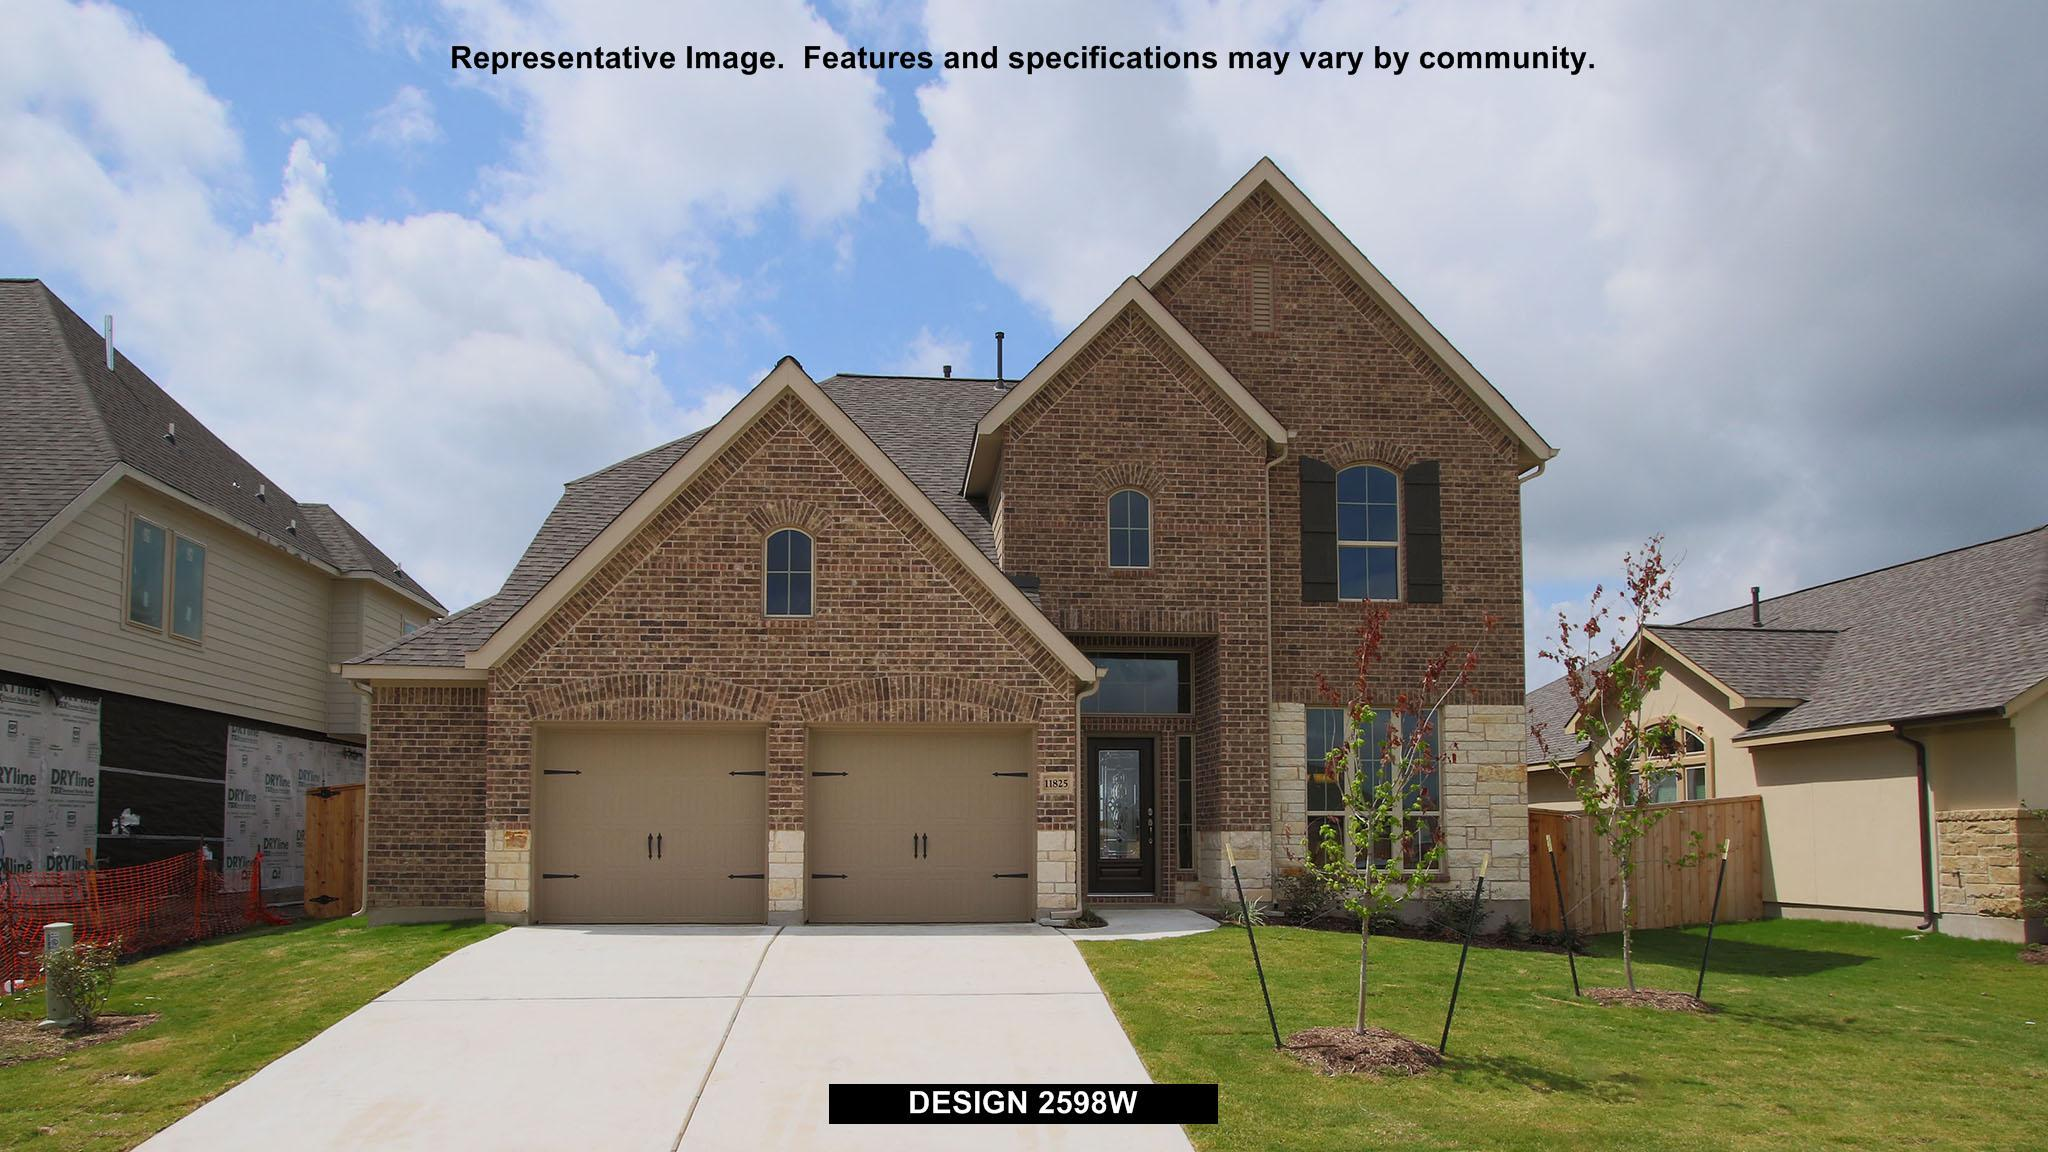 2598W - Firethorne 50': Katy, TX - Perry Homes